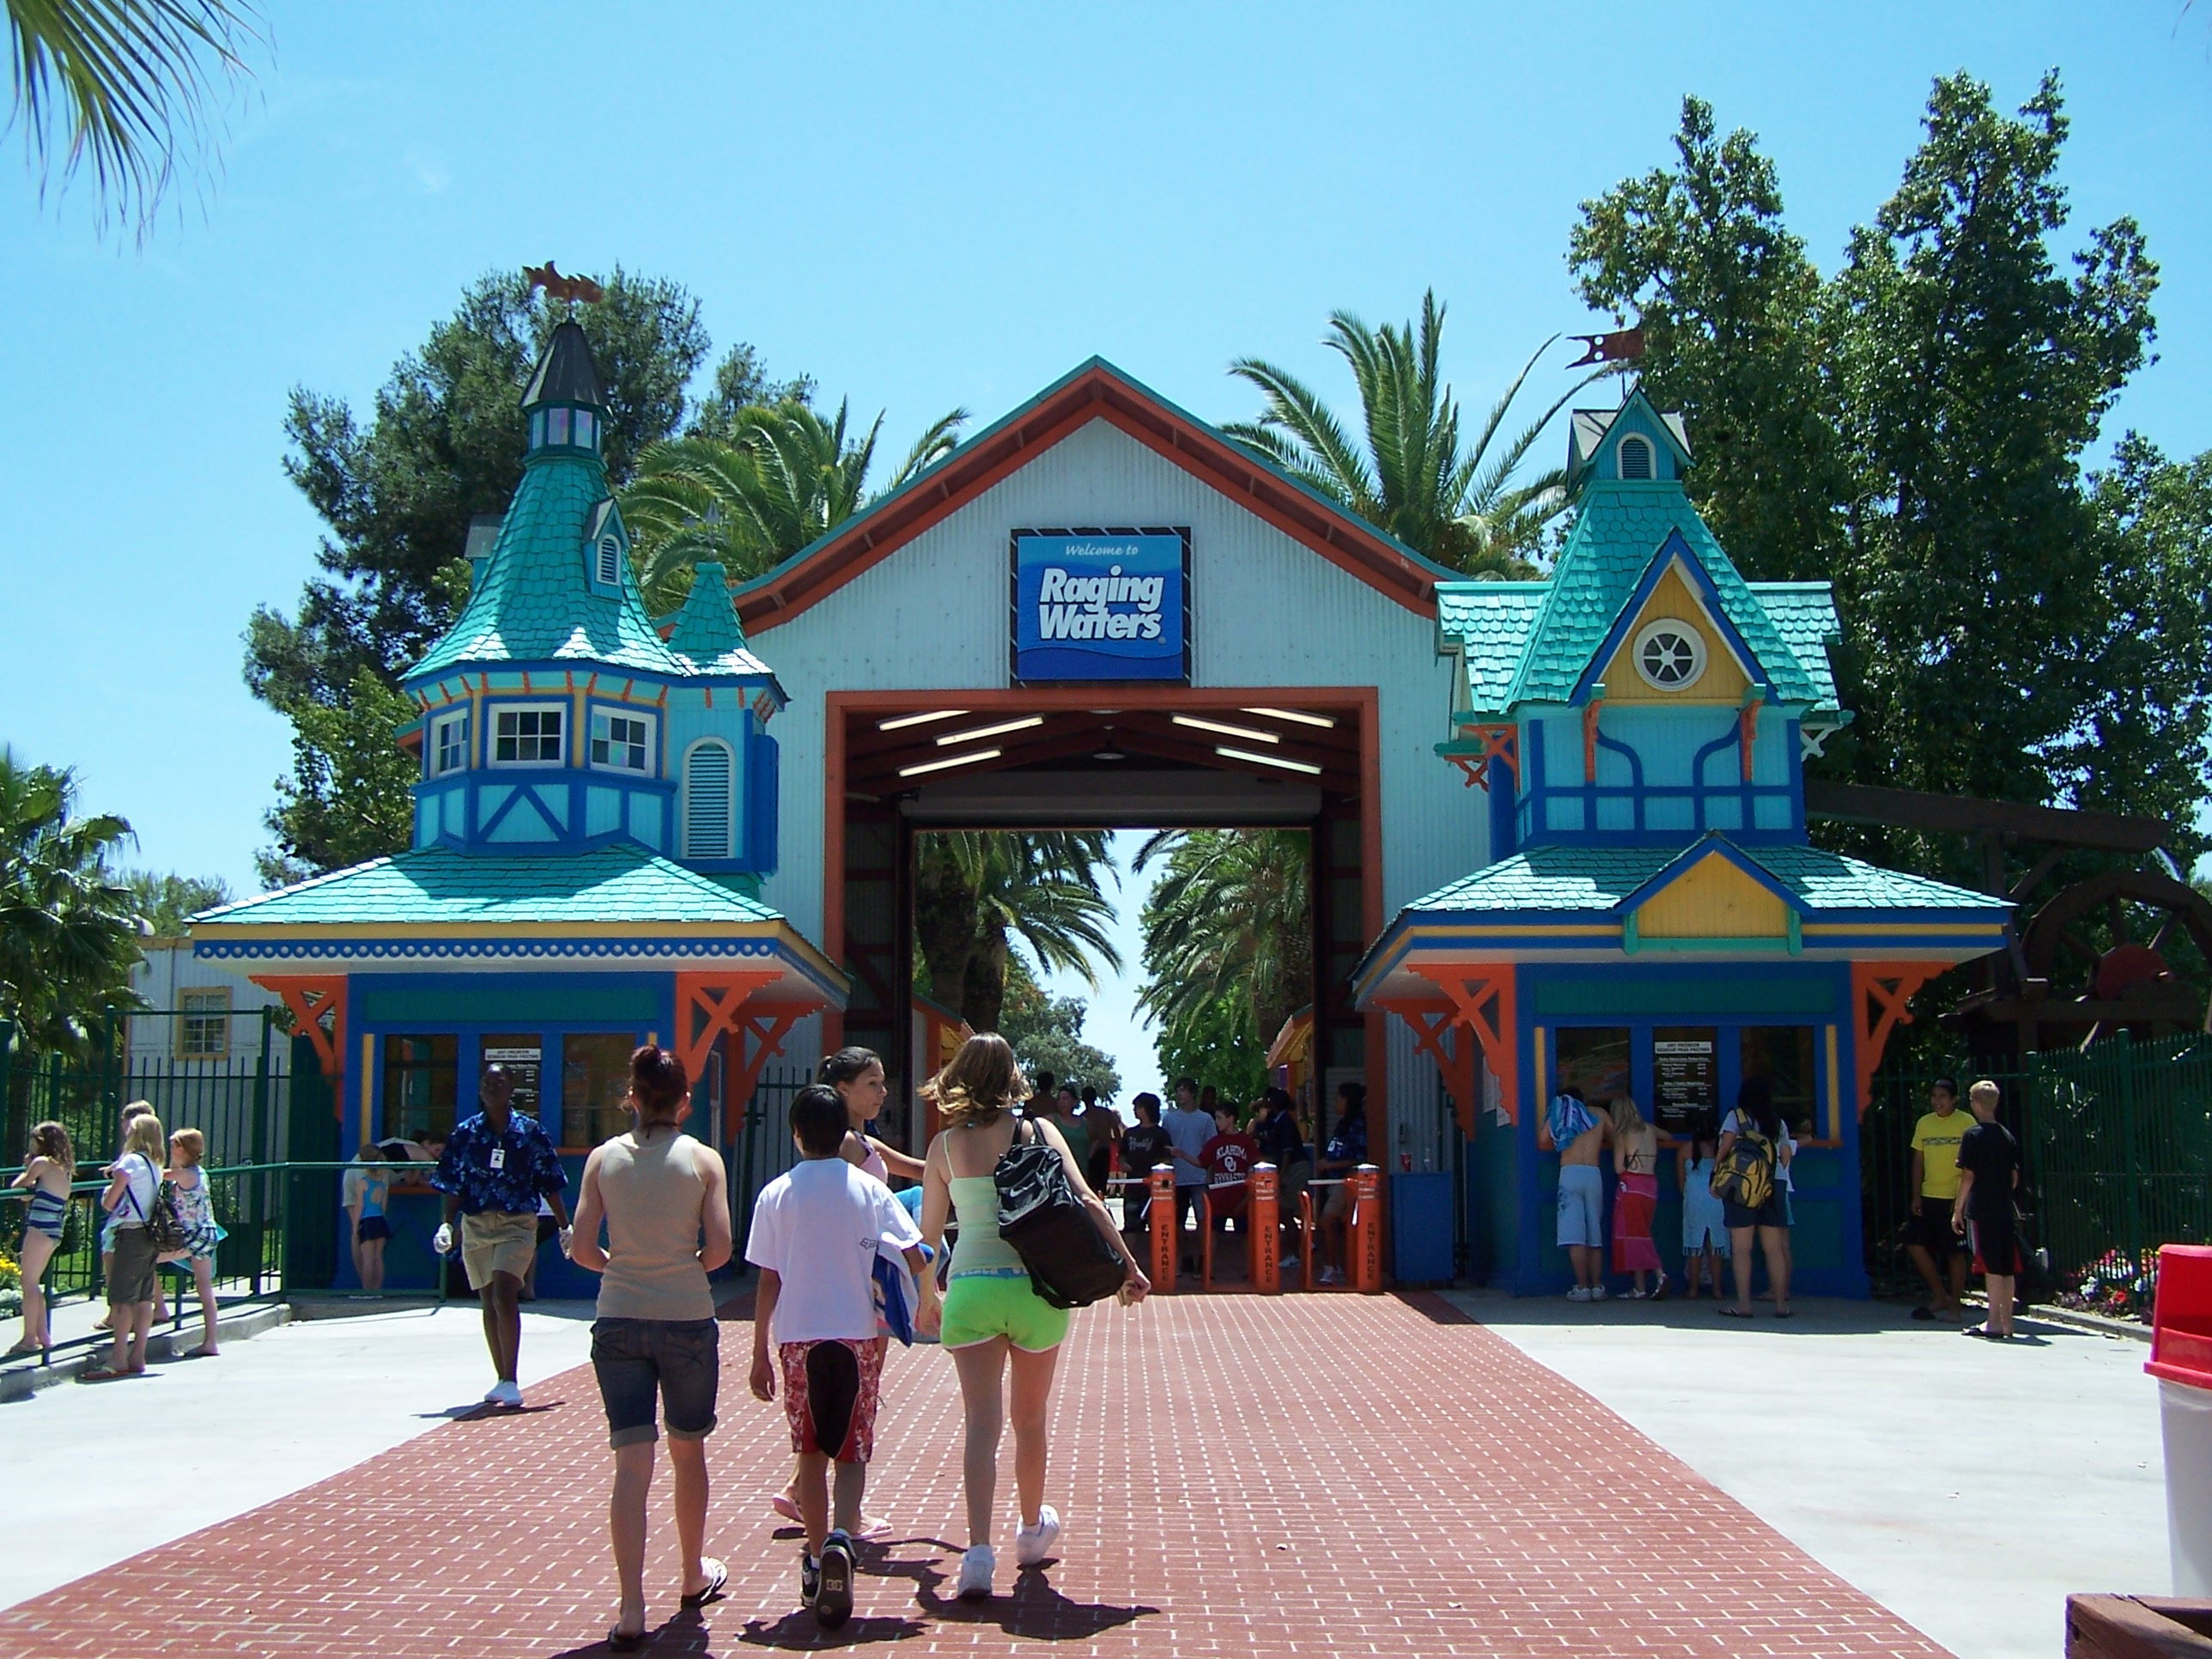 Raging waters discount tickets coupons